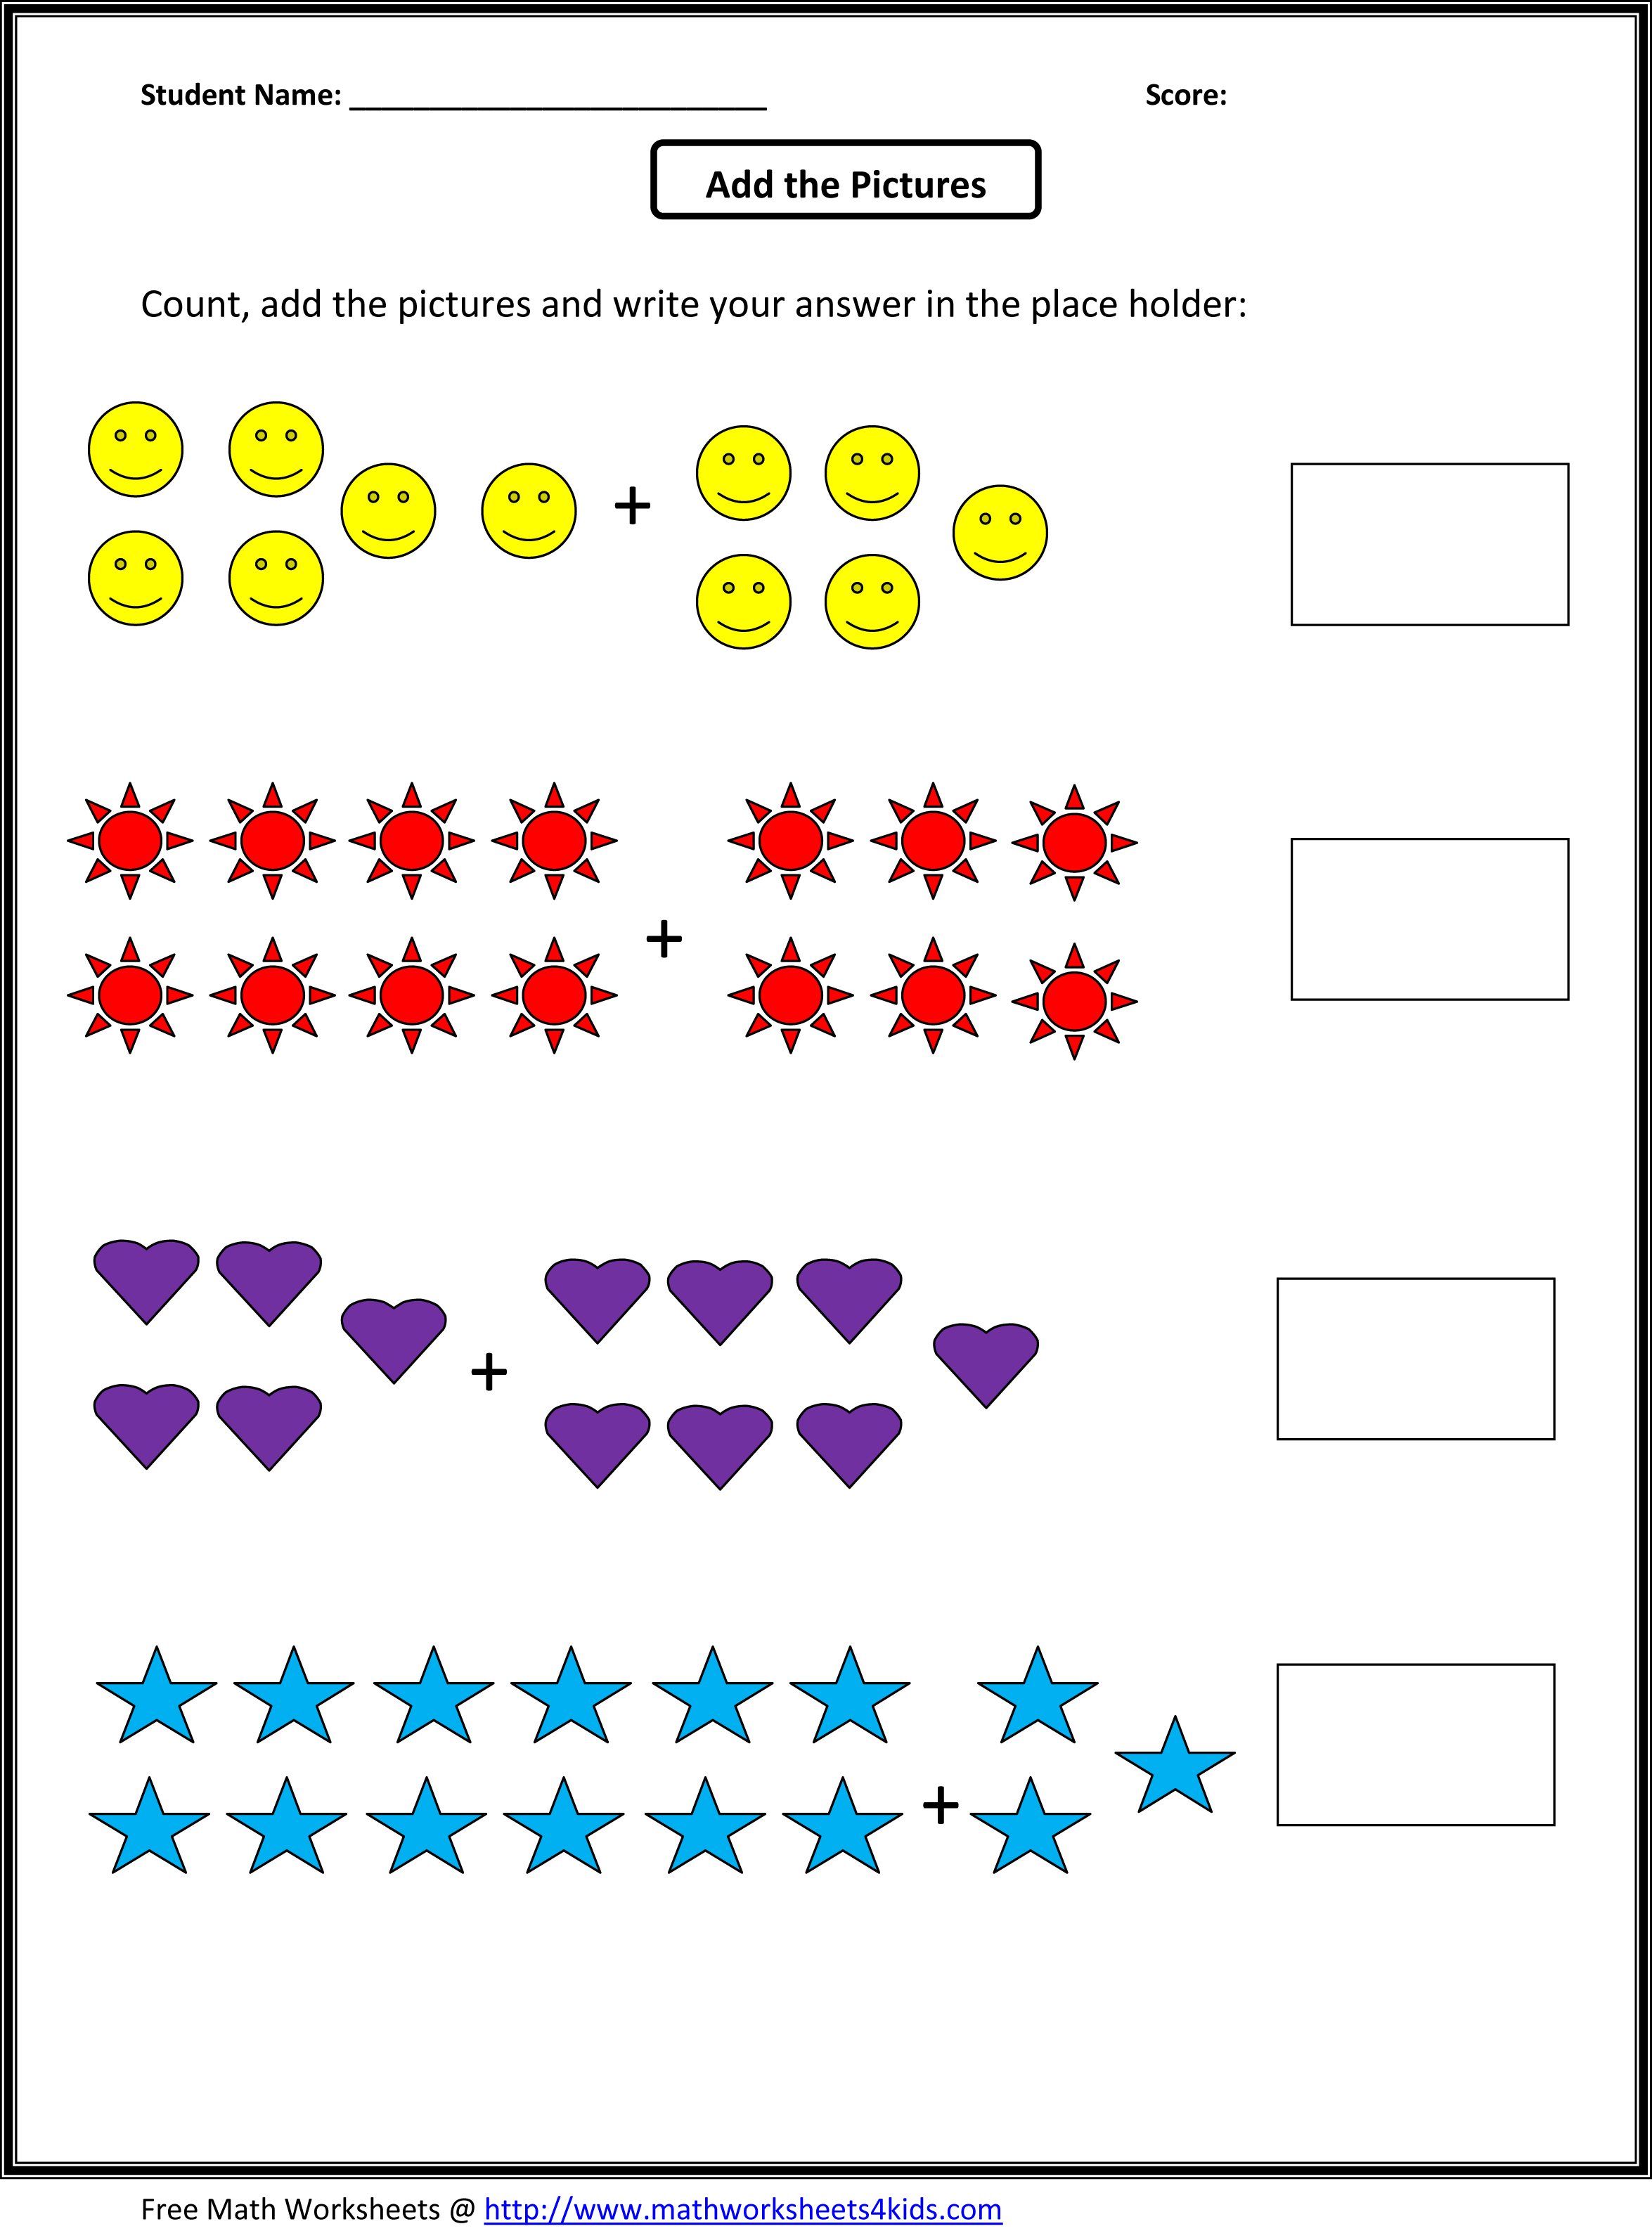 Weirdmailus  Winning Grade  Maths Worksheet  Reocurent With Inspiring Math Worksheets For St Grade Free  Reocurent With Alluring First Grade Writing Worksheets Also Exponent Worksheet Answers In Addition Complex Fractions Worksheet And Electron Energy And Light Worksheet Answers As Well As Algebra Worksheet Additionally Addition Subtraction Worksheets From Reocurentcom With Weirdmailus  Inspiring Grade  Maths Worksheet  Reocurent With Alluring Math Worksheets For St Grade Free  Reocurent And Winning First Grade Writing Worksheets Also Exponent Worksheet Answers In Addition Complex Fractions Worksheet From Reocurentcom